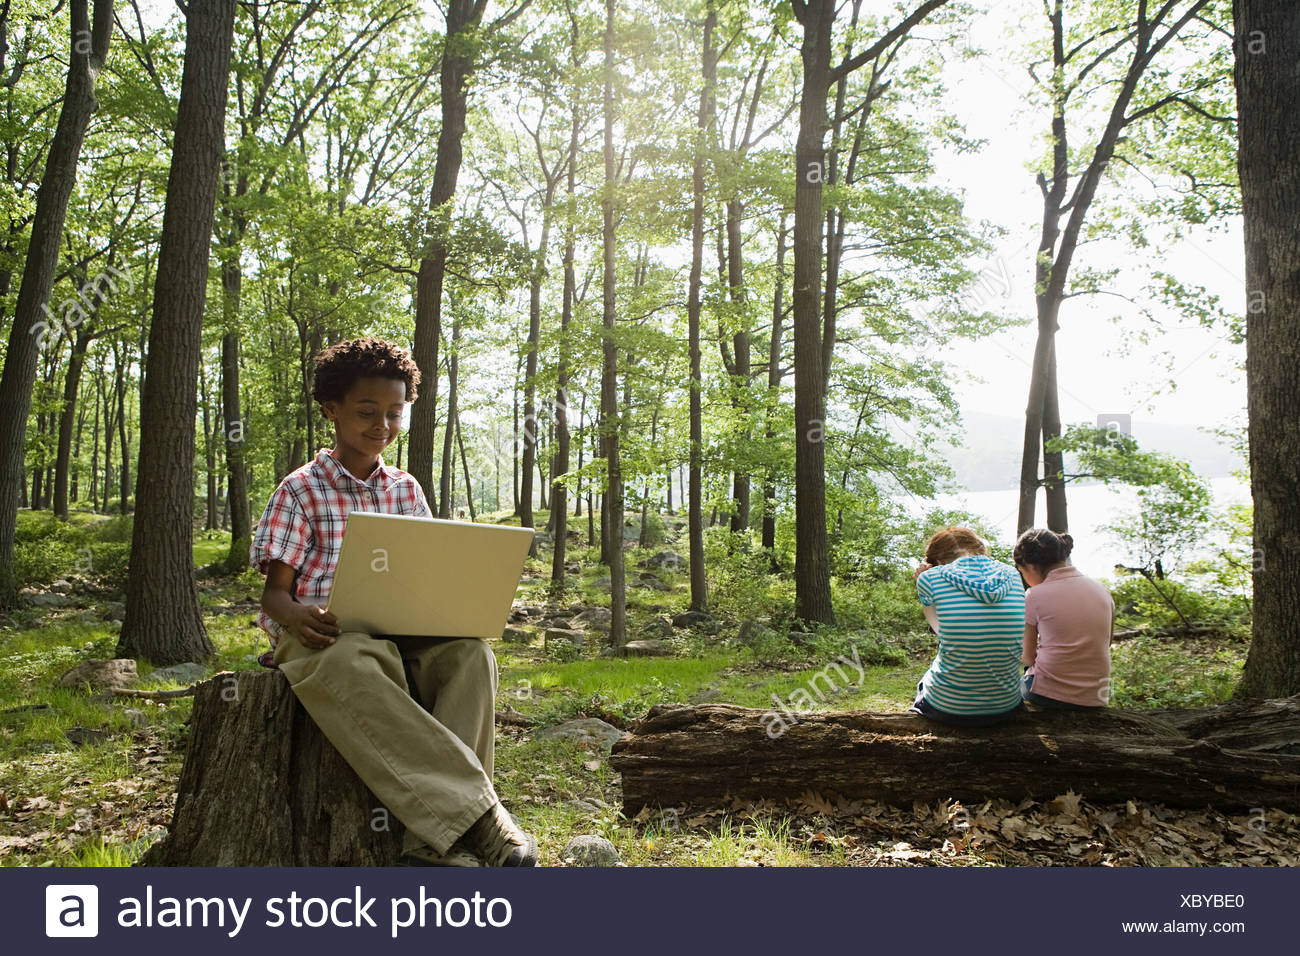 Boy using a laptop in a forest - Stock Image